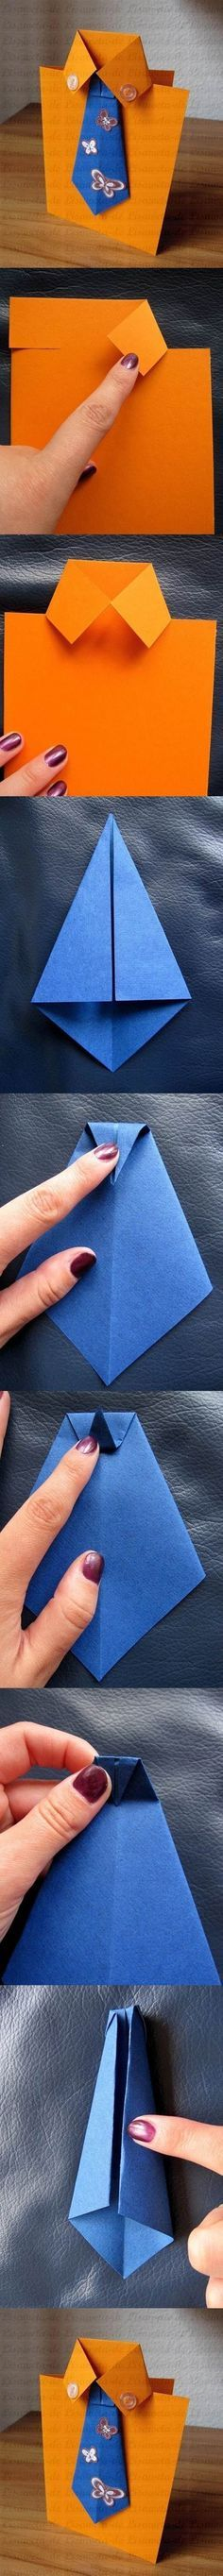 How to make a shirt and tie greeting card cool shirt diy tie diy crafts do it yourself diy projects greeting card